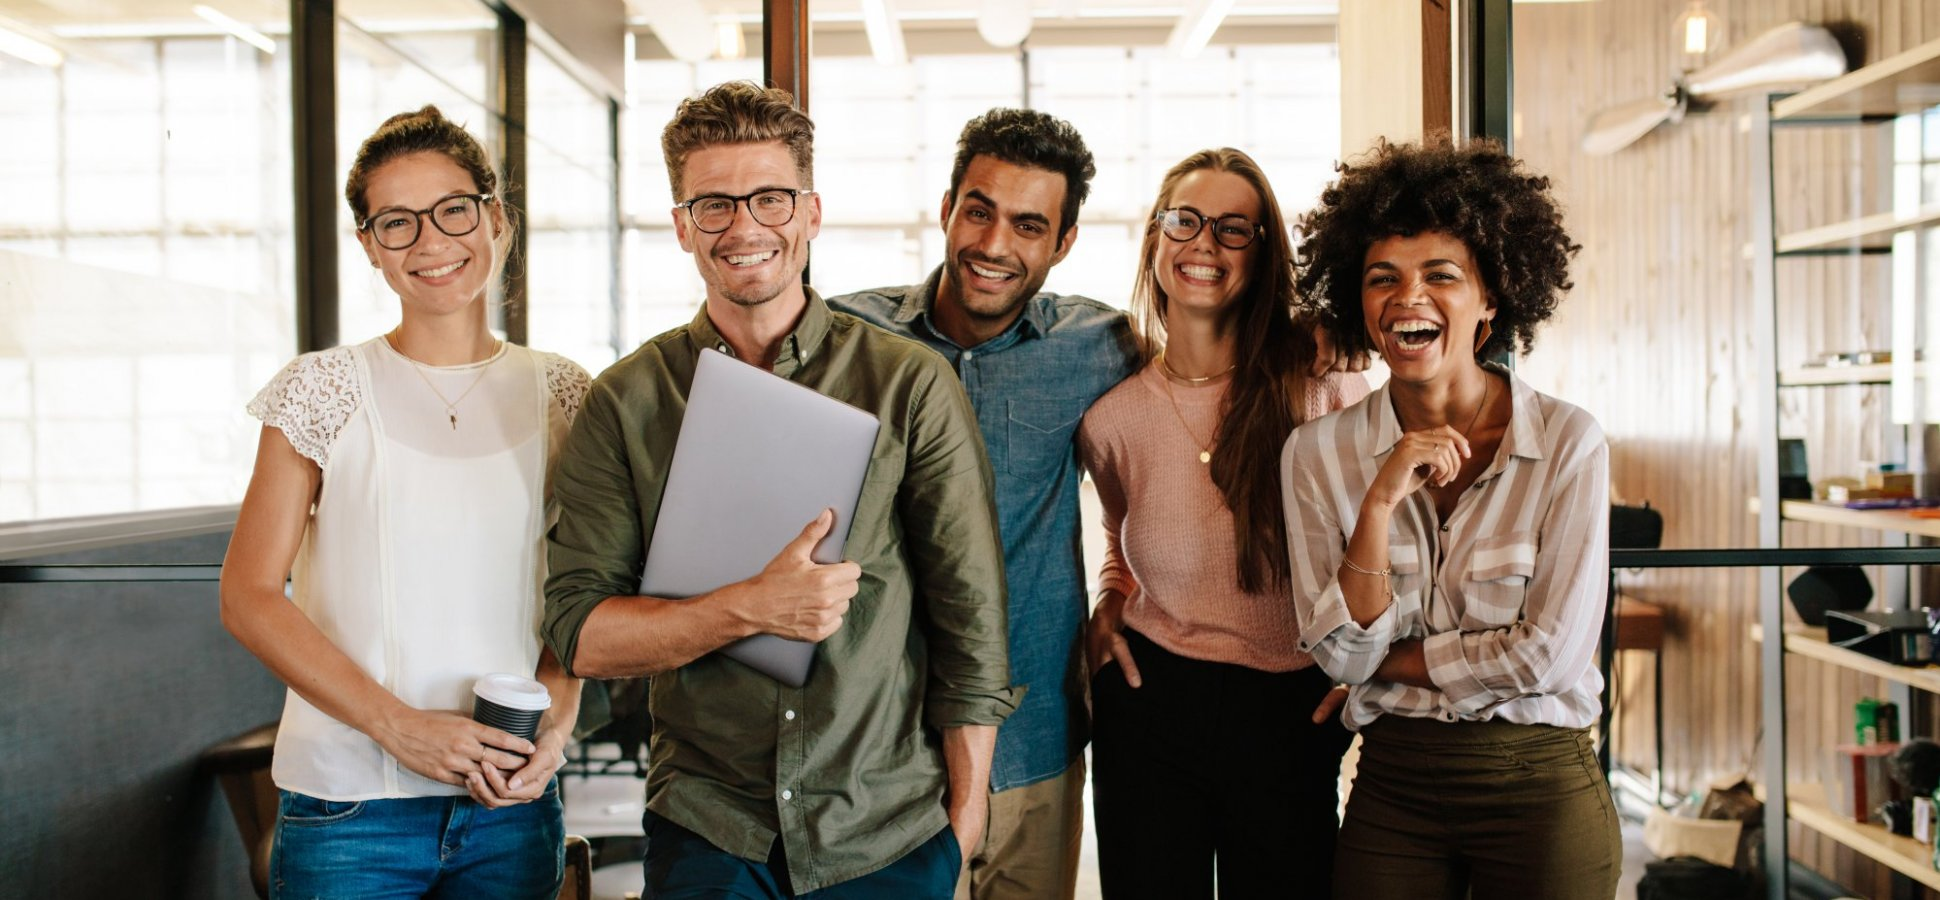 Want to Retain Millennial Talent? The Surprising Way This Company Does It is Smart (and Replicable)